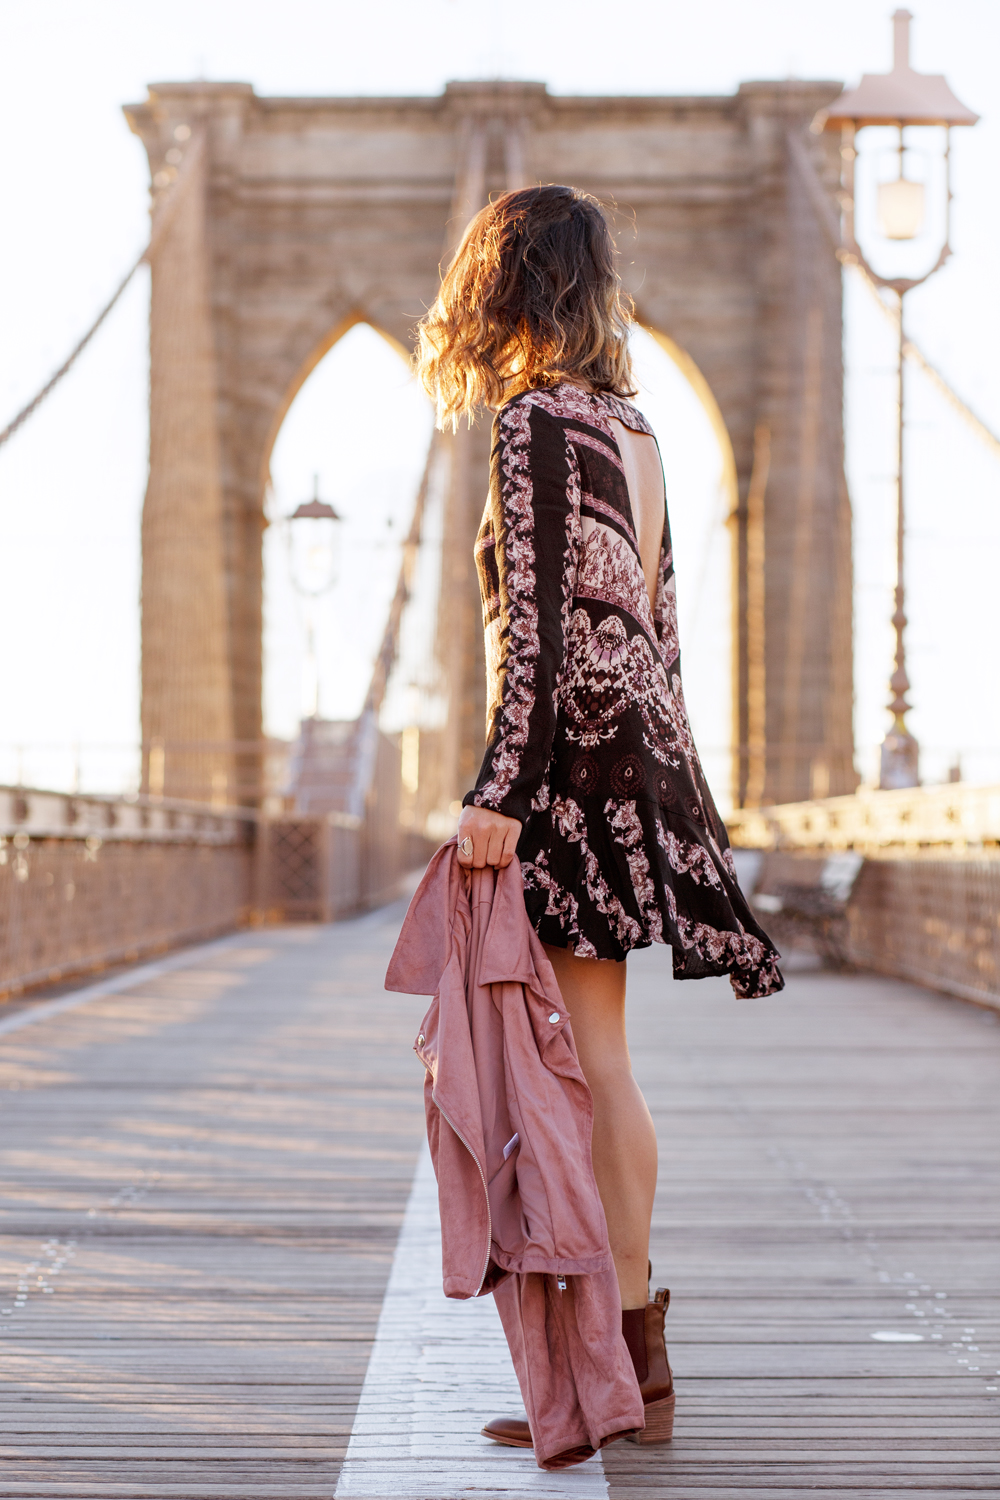 08brooklynbridge-nyc-newyork-sunrise-travel-style-fashion